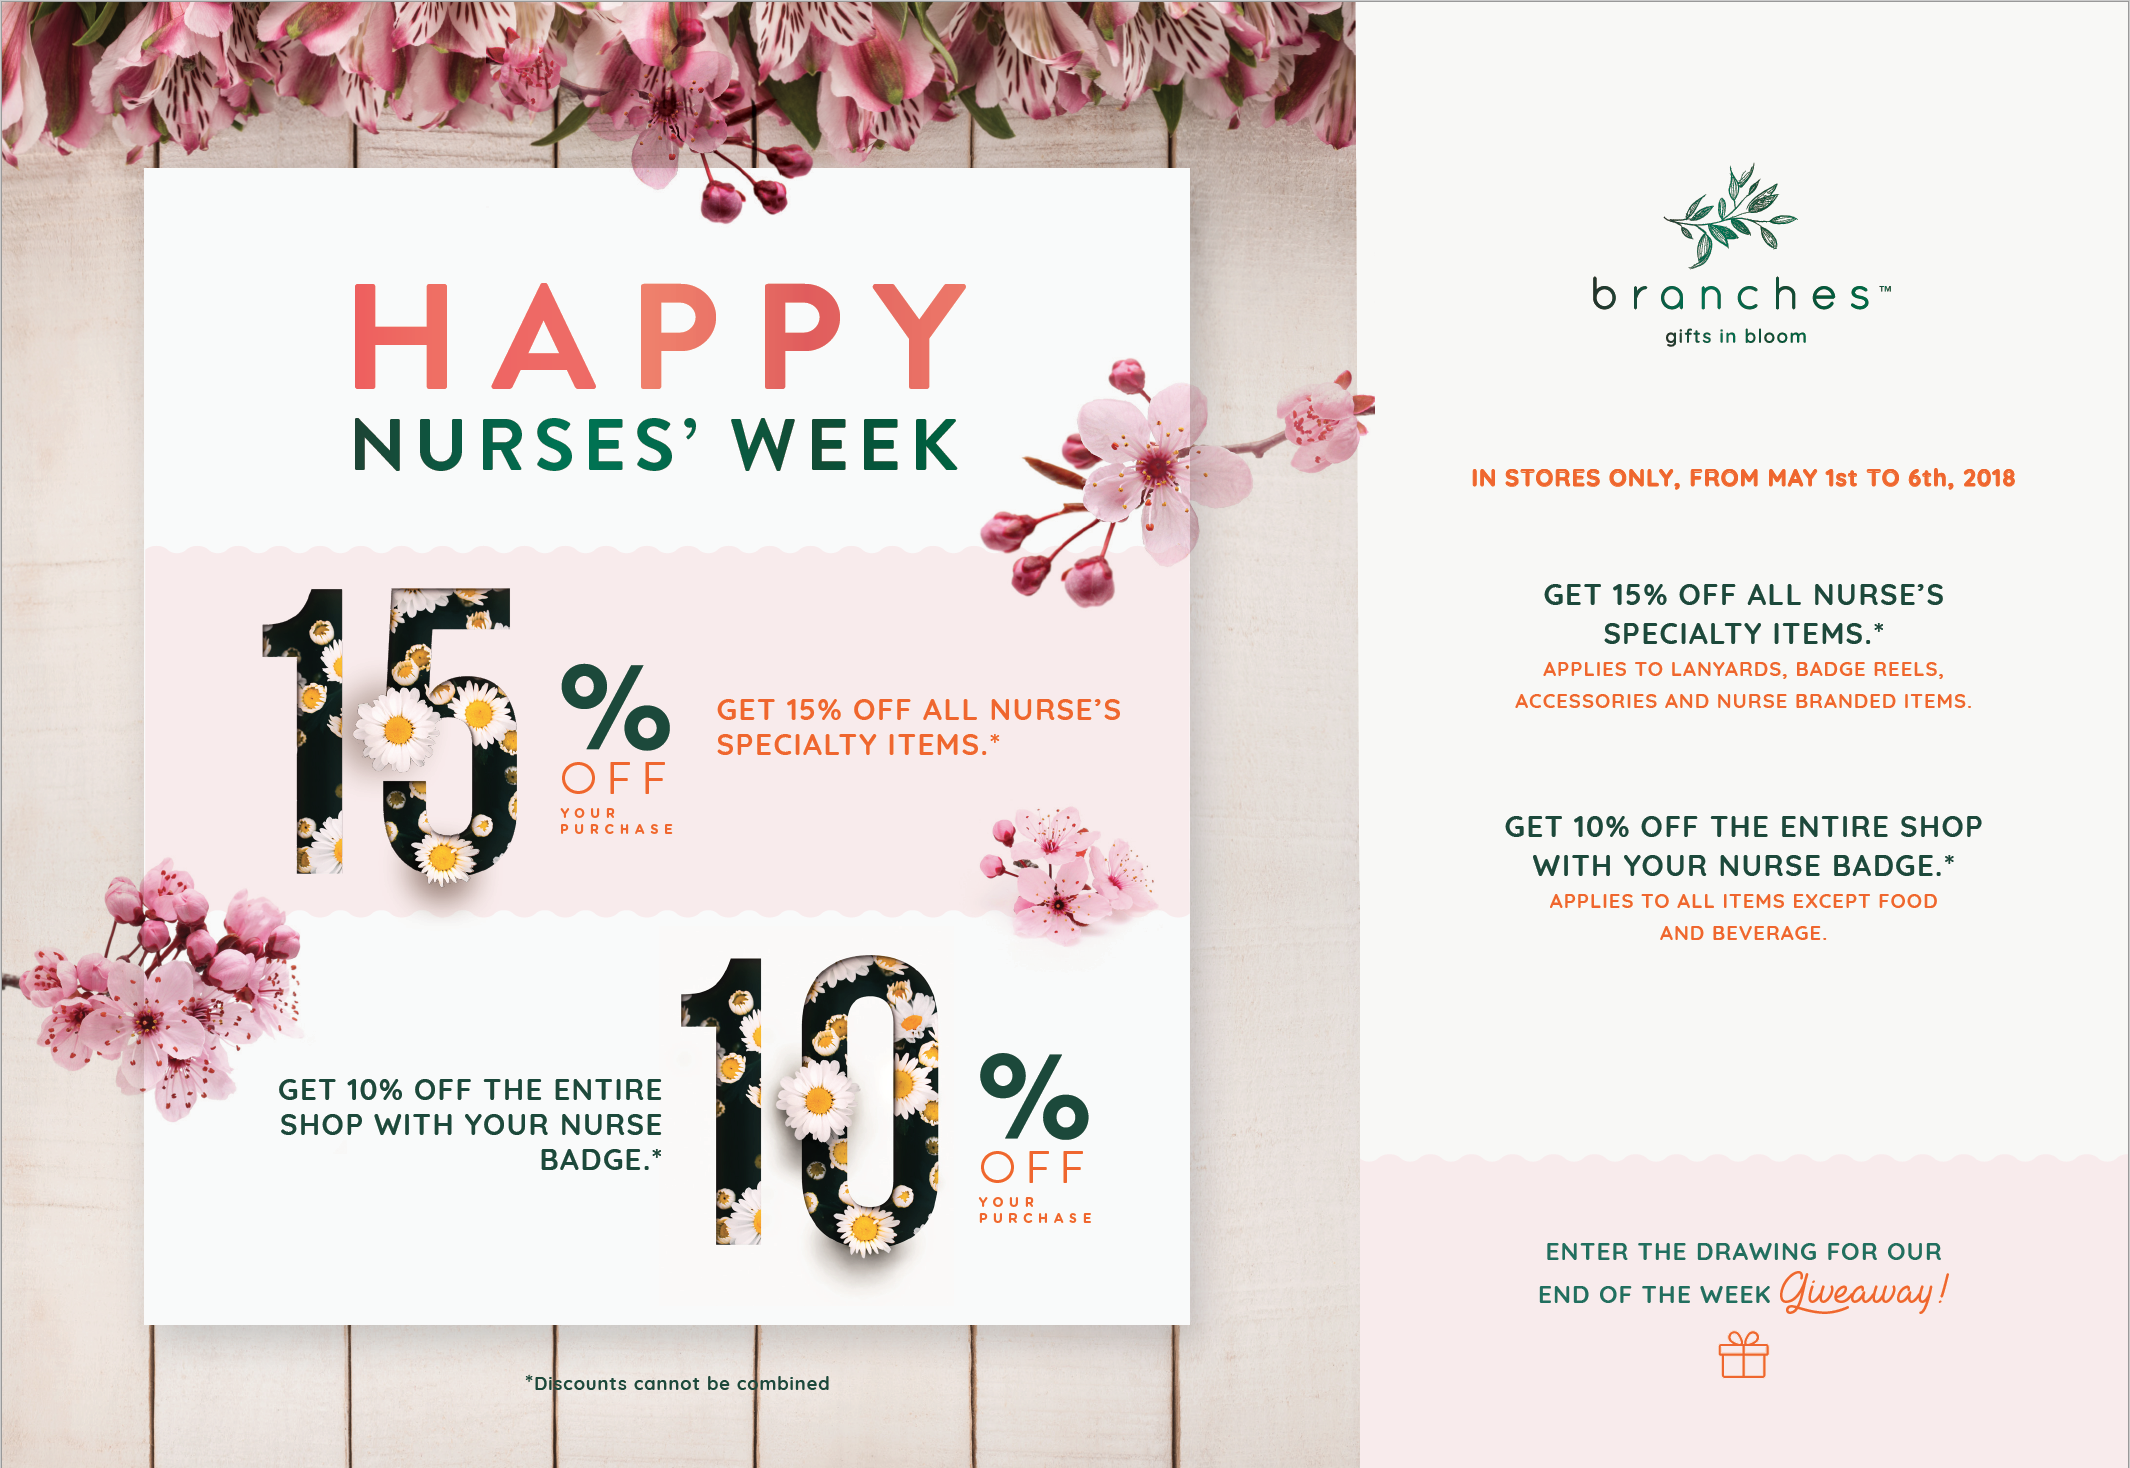 Nurse's Week E-mail.png